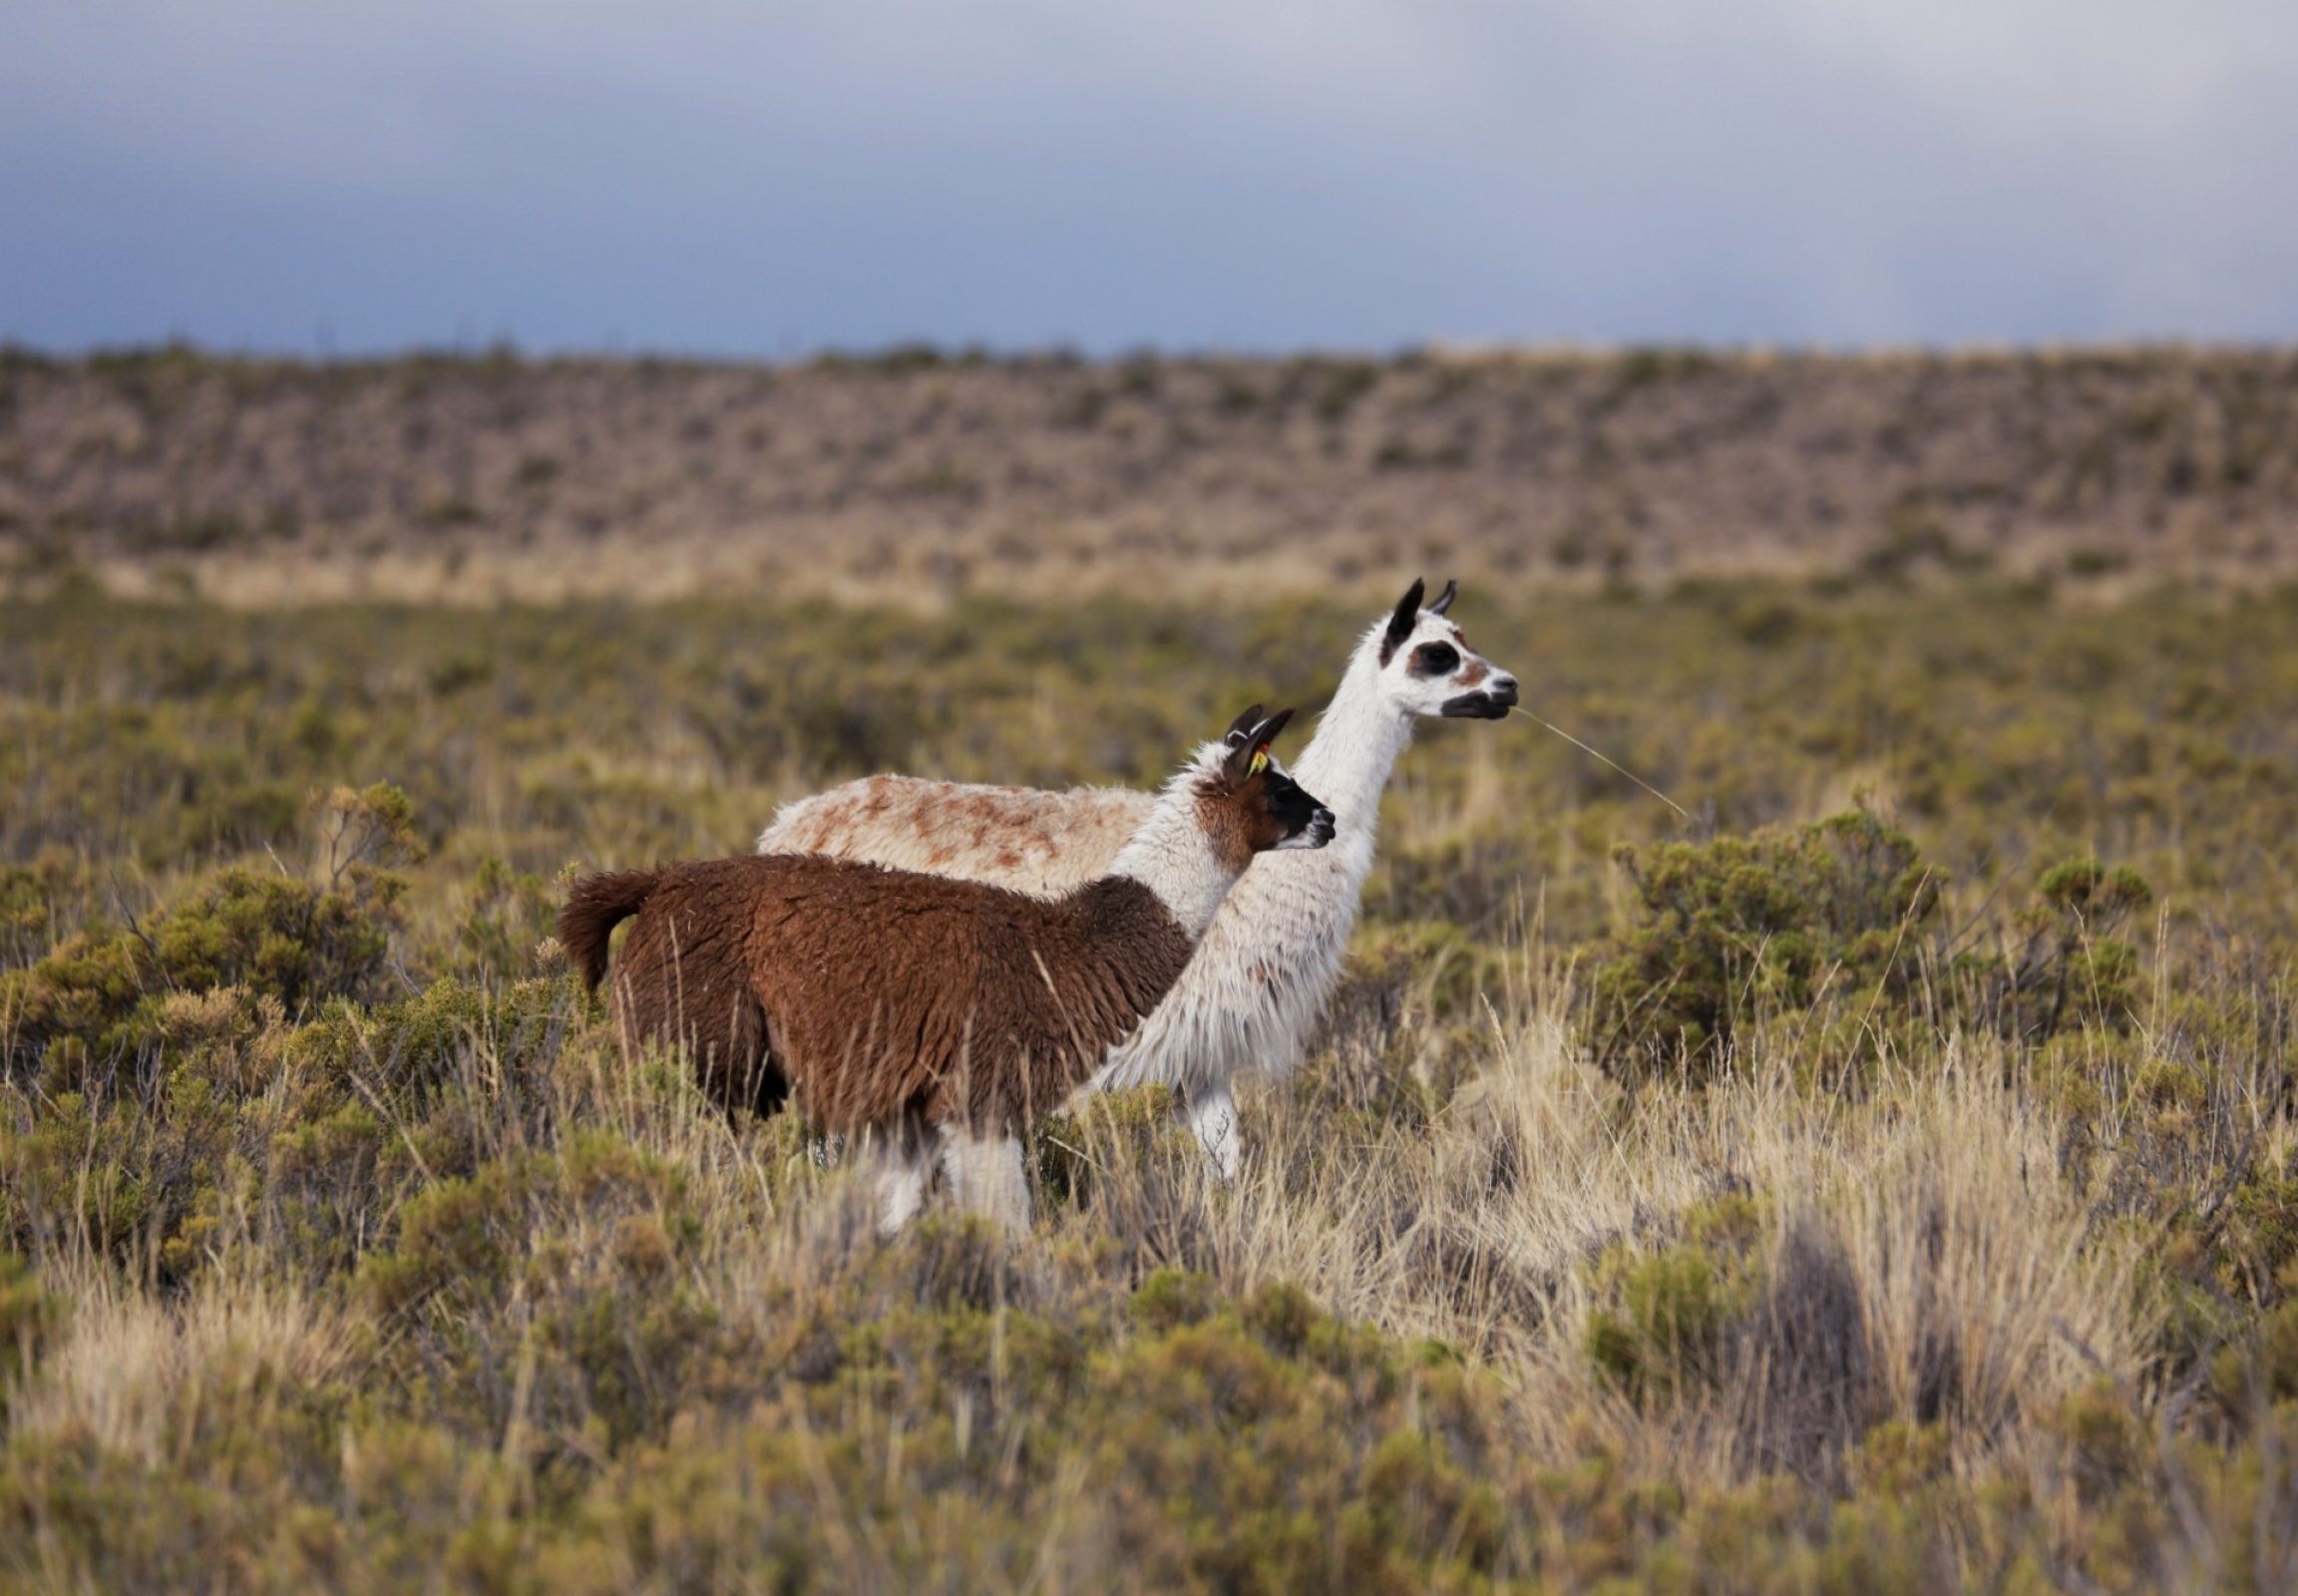 Two llamas in a field.